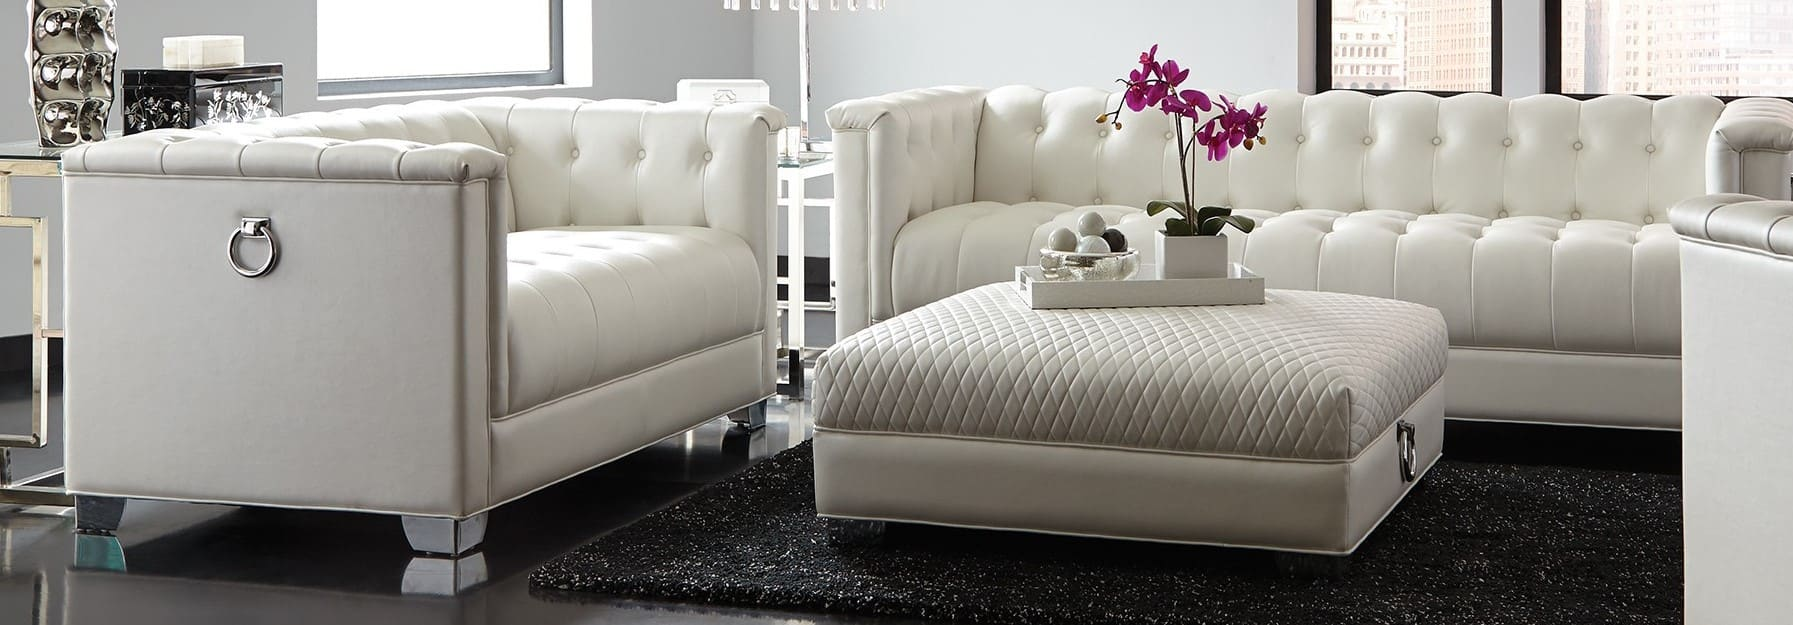 Chaviano Low Profile Pearl White Tufted Sofa Set 3Pc Sofa Loveseat Chair Couches